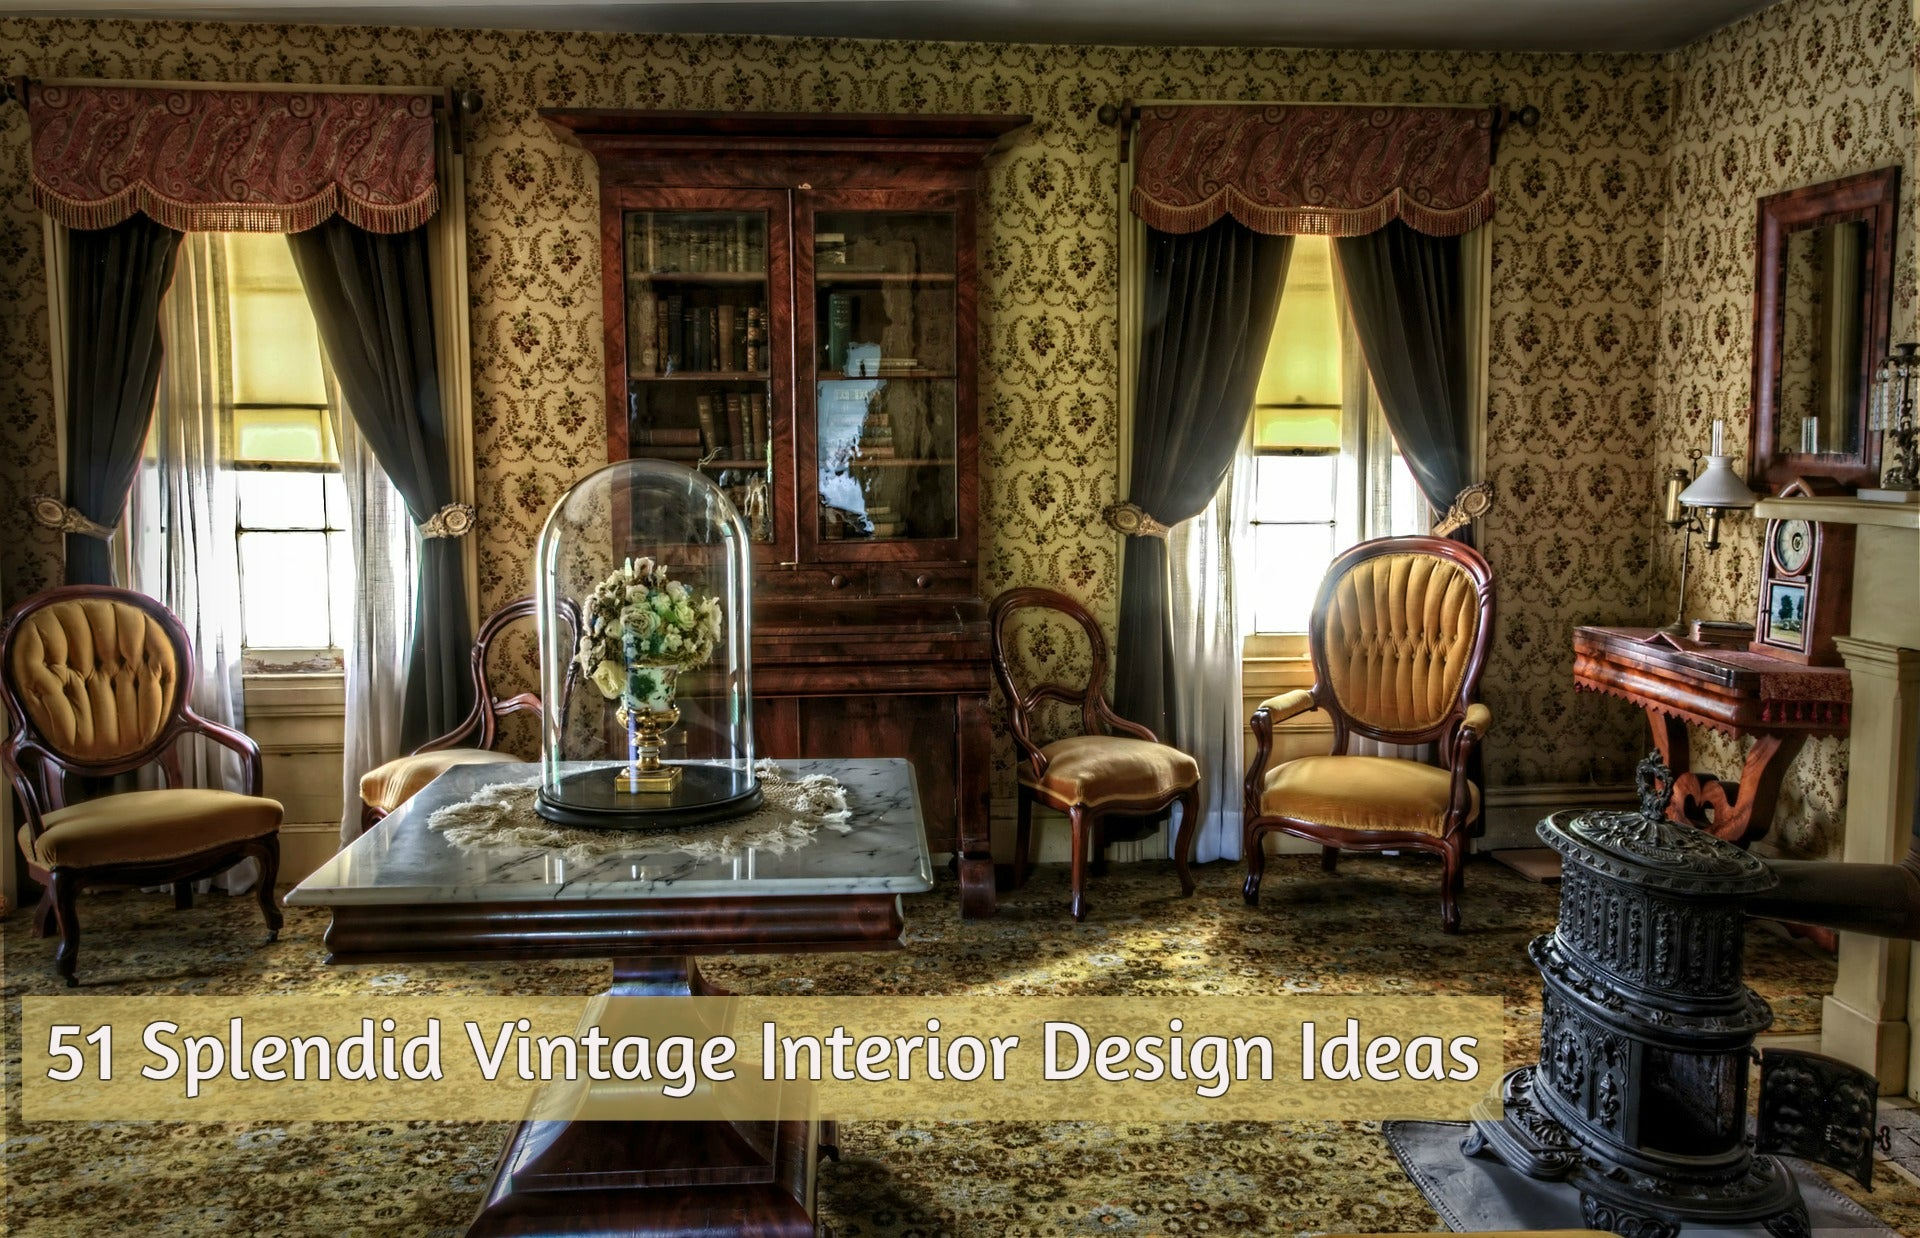 51 Worthy Vintage Interior Design Ideas To Convert Your Home The